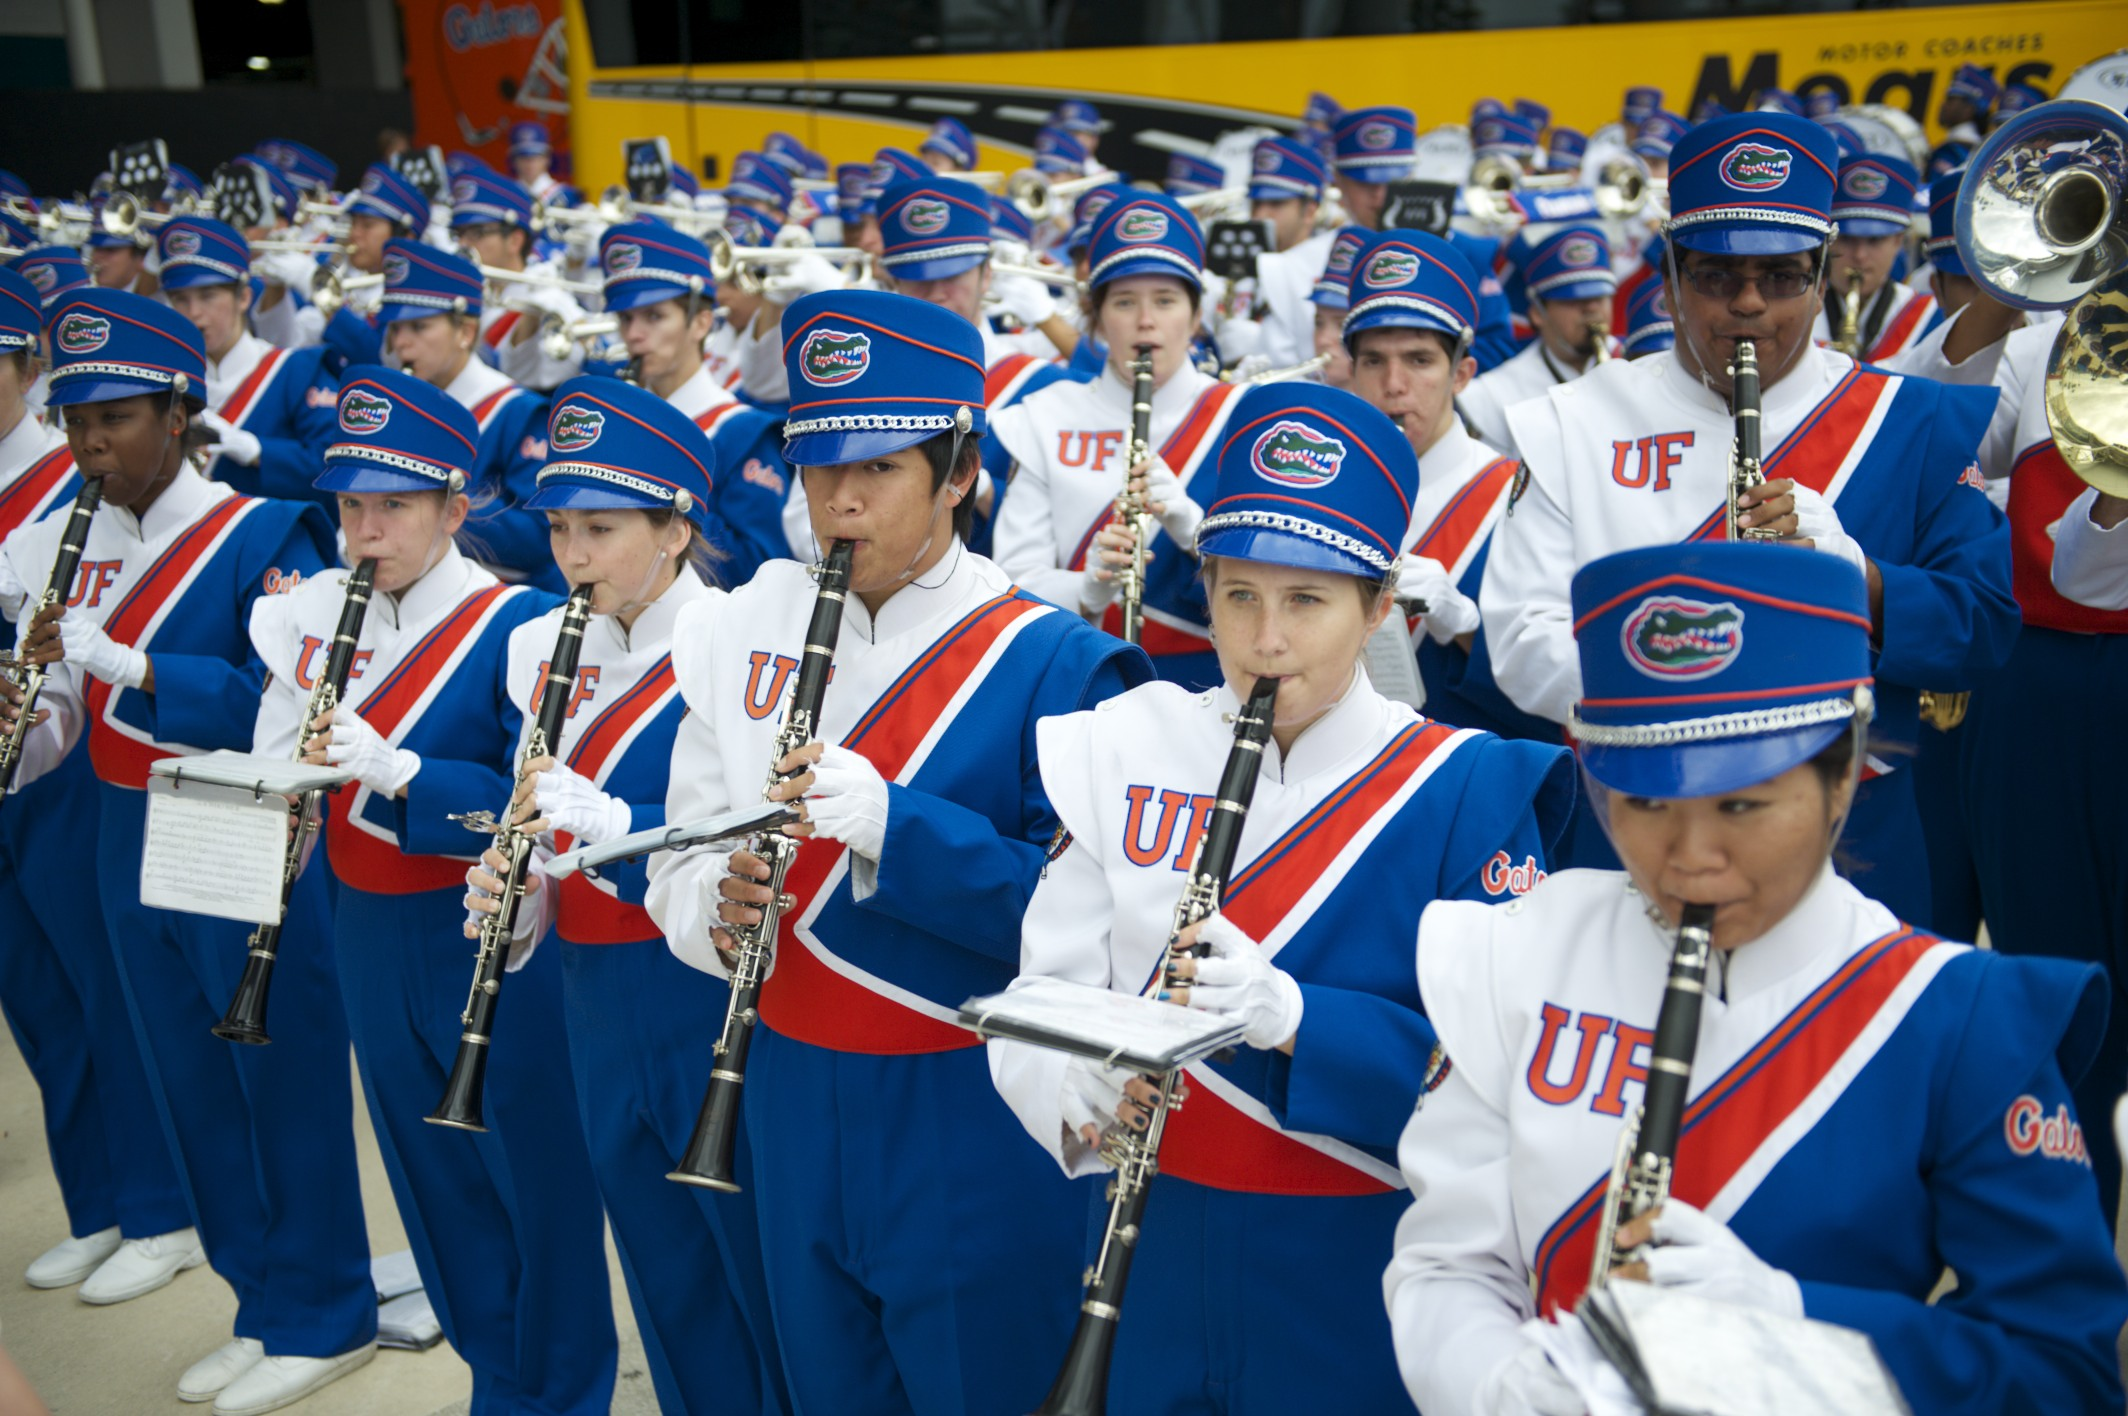 The Pride of the Sunshine, Florida's marching band, performs at Gator Walk prior to Saturday's game against the Georgia bulldogs.